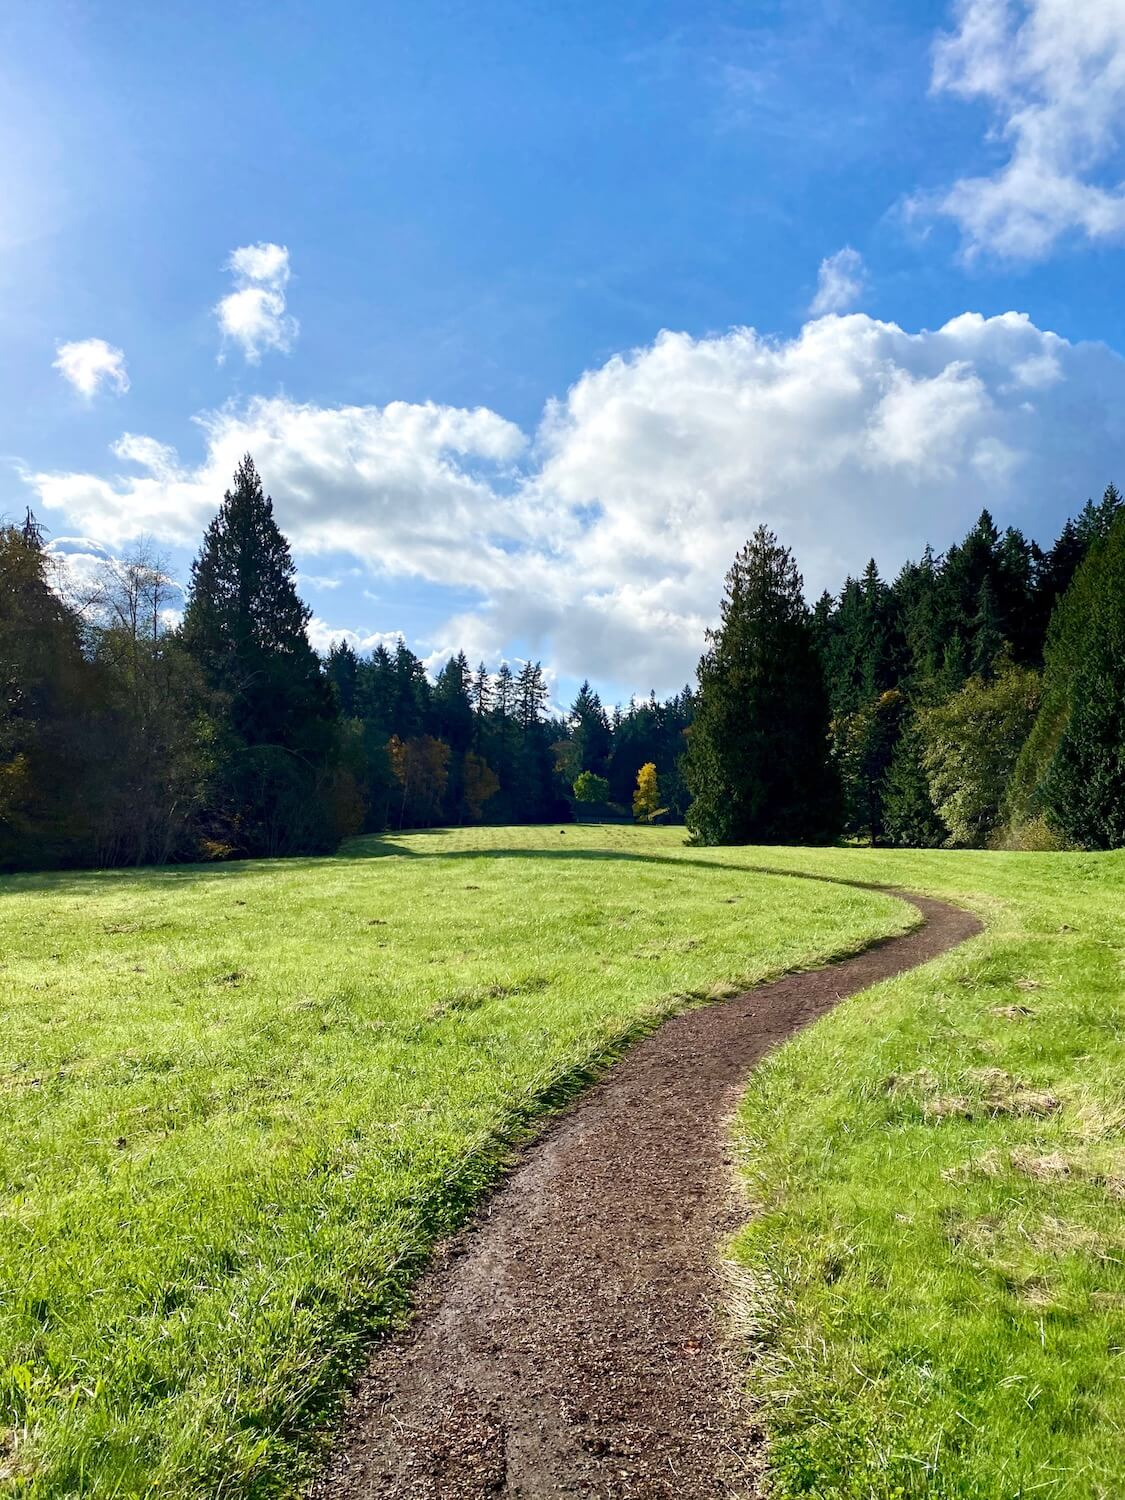 A winding path of brown wood chips meanders from the start of this photo into the distance through a green grassy meadow which is framed in by evergreen trees under blue sky.